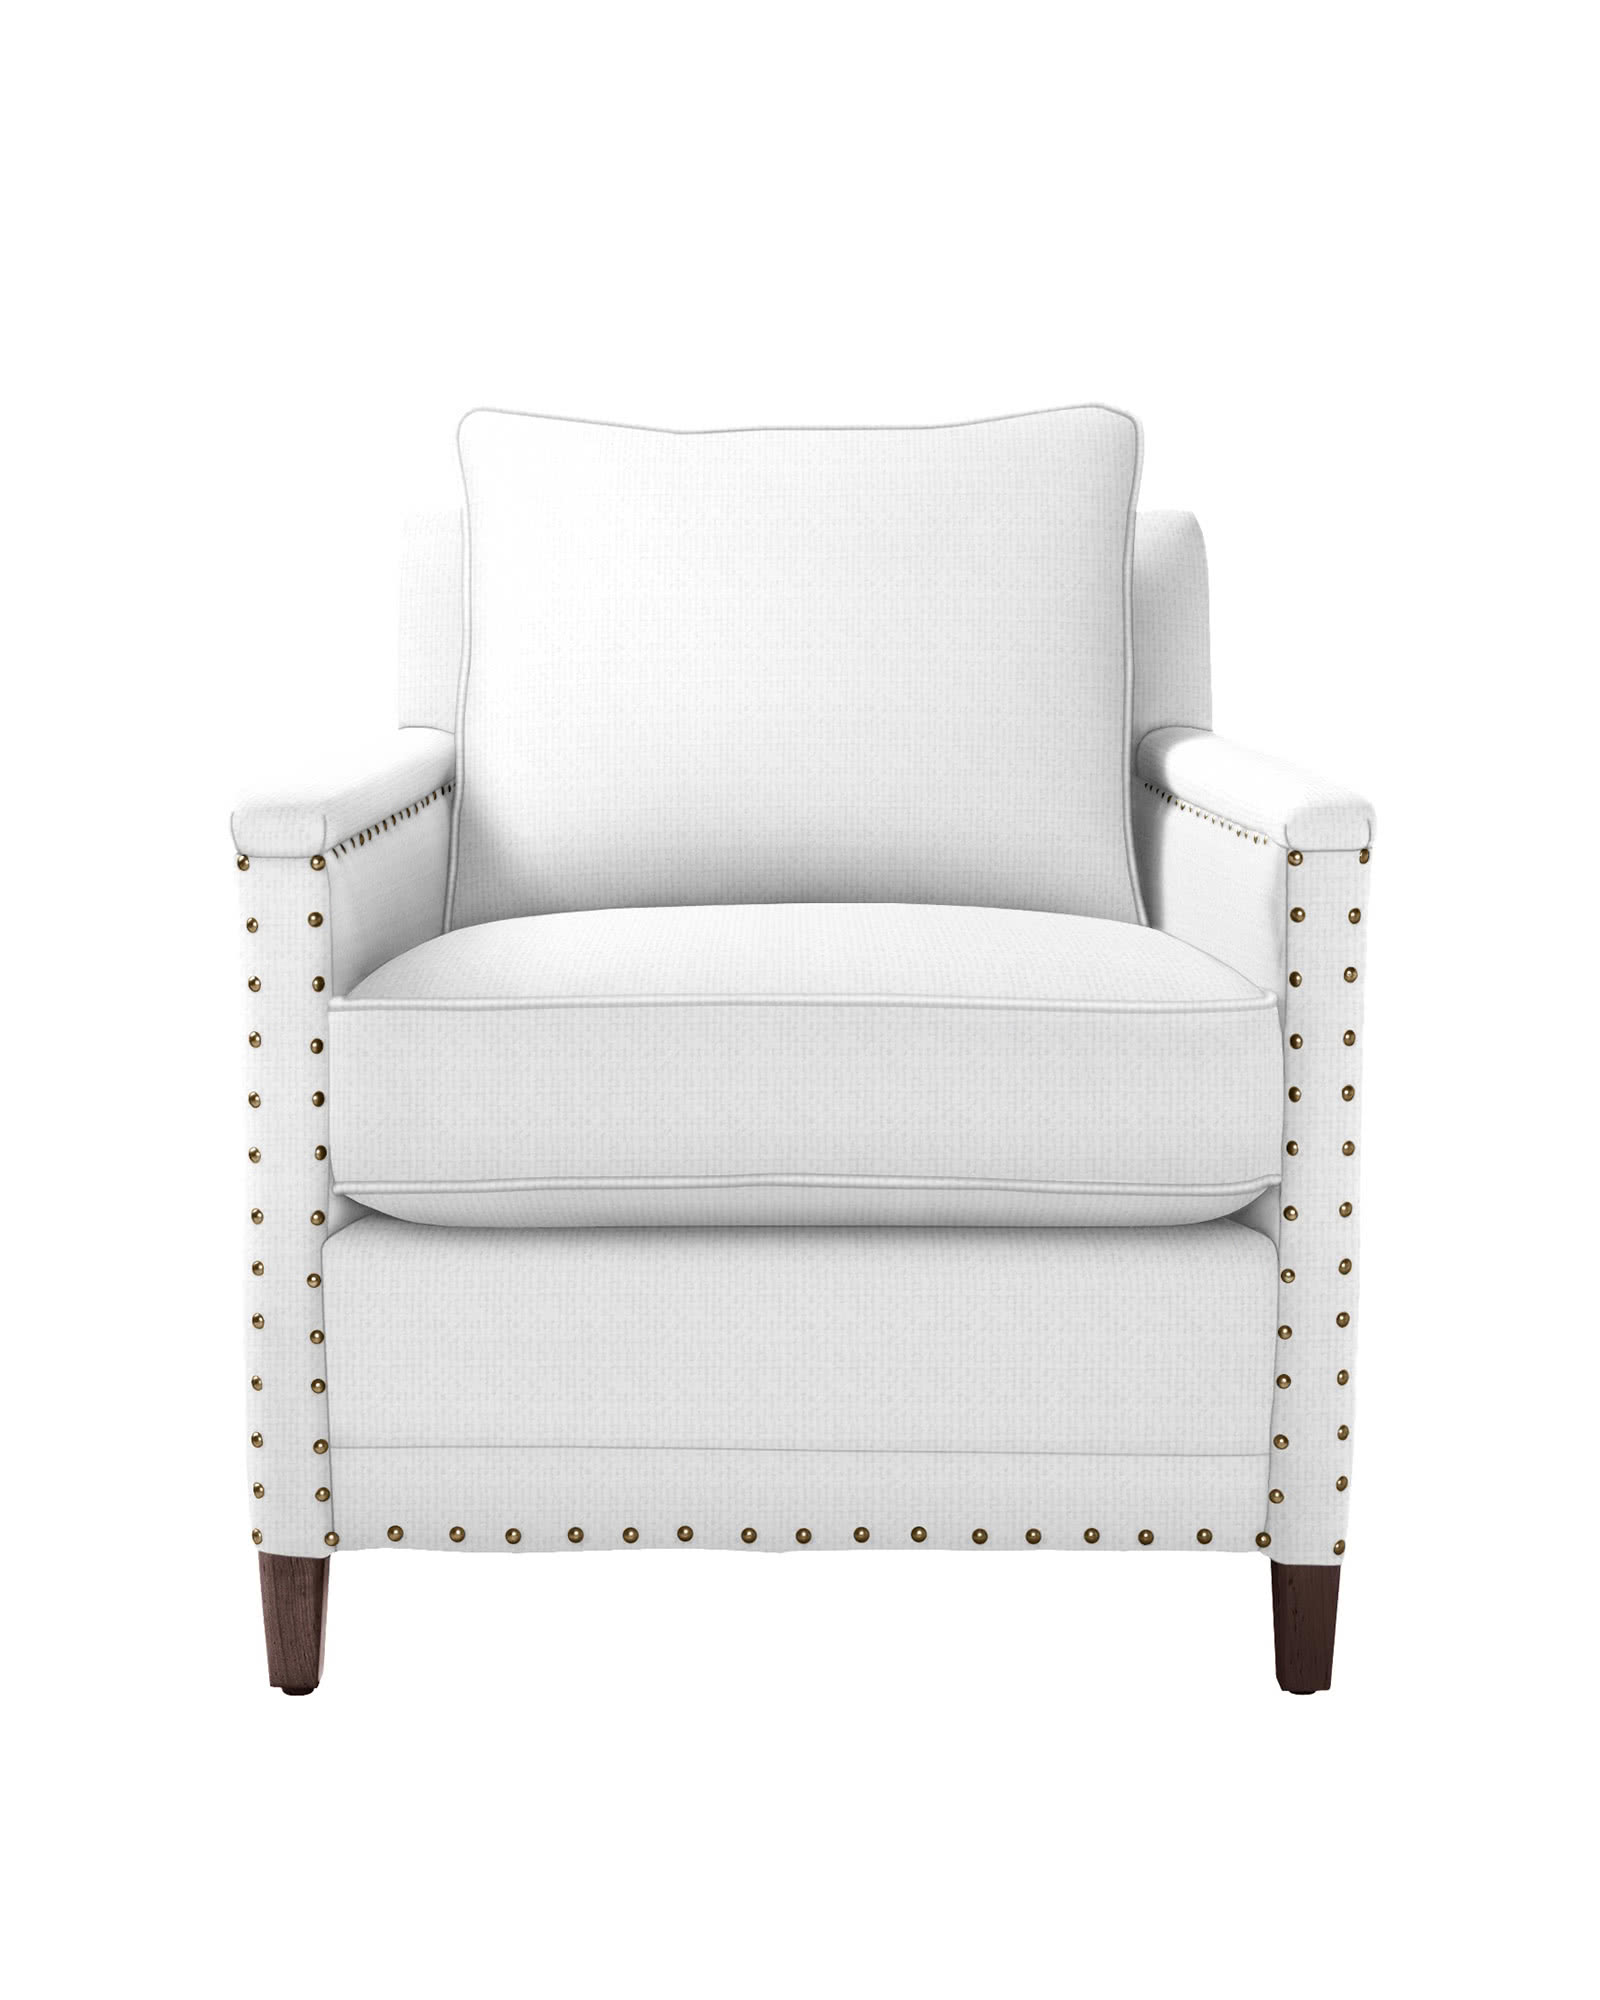 Spruce Street Chair with Nailheads